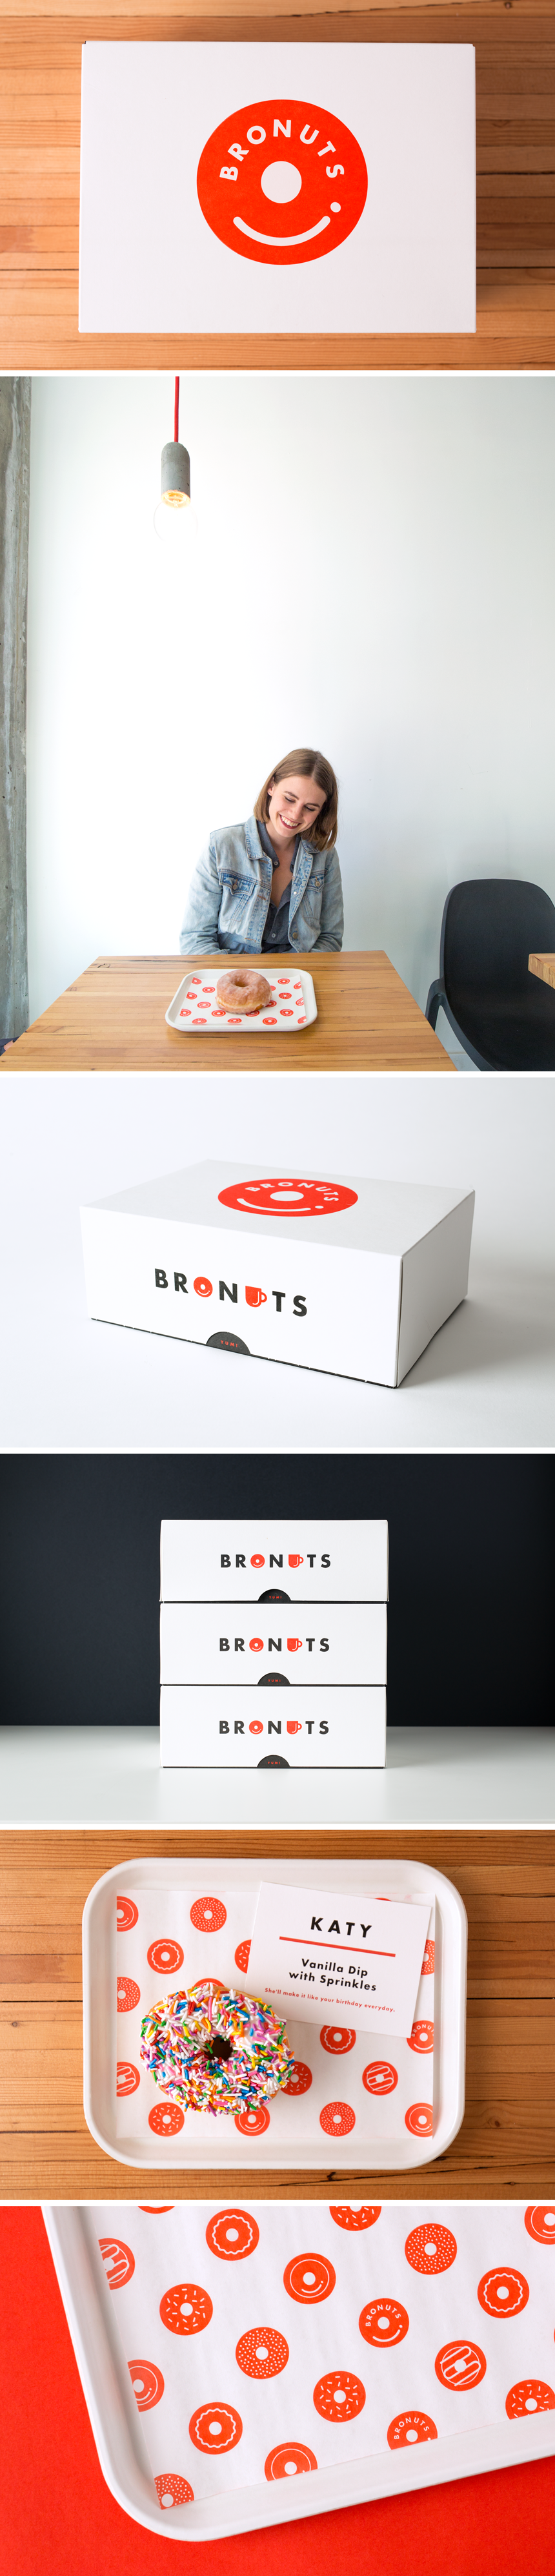 Bronuts - One Plus One Design